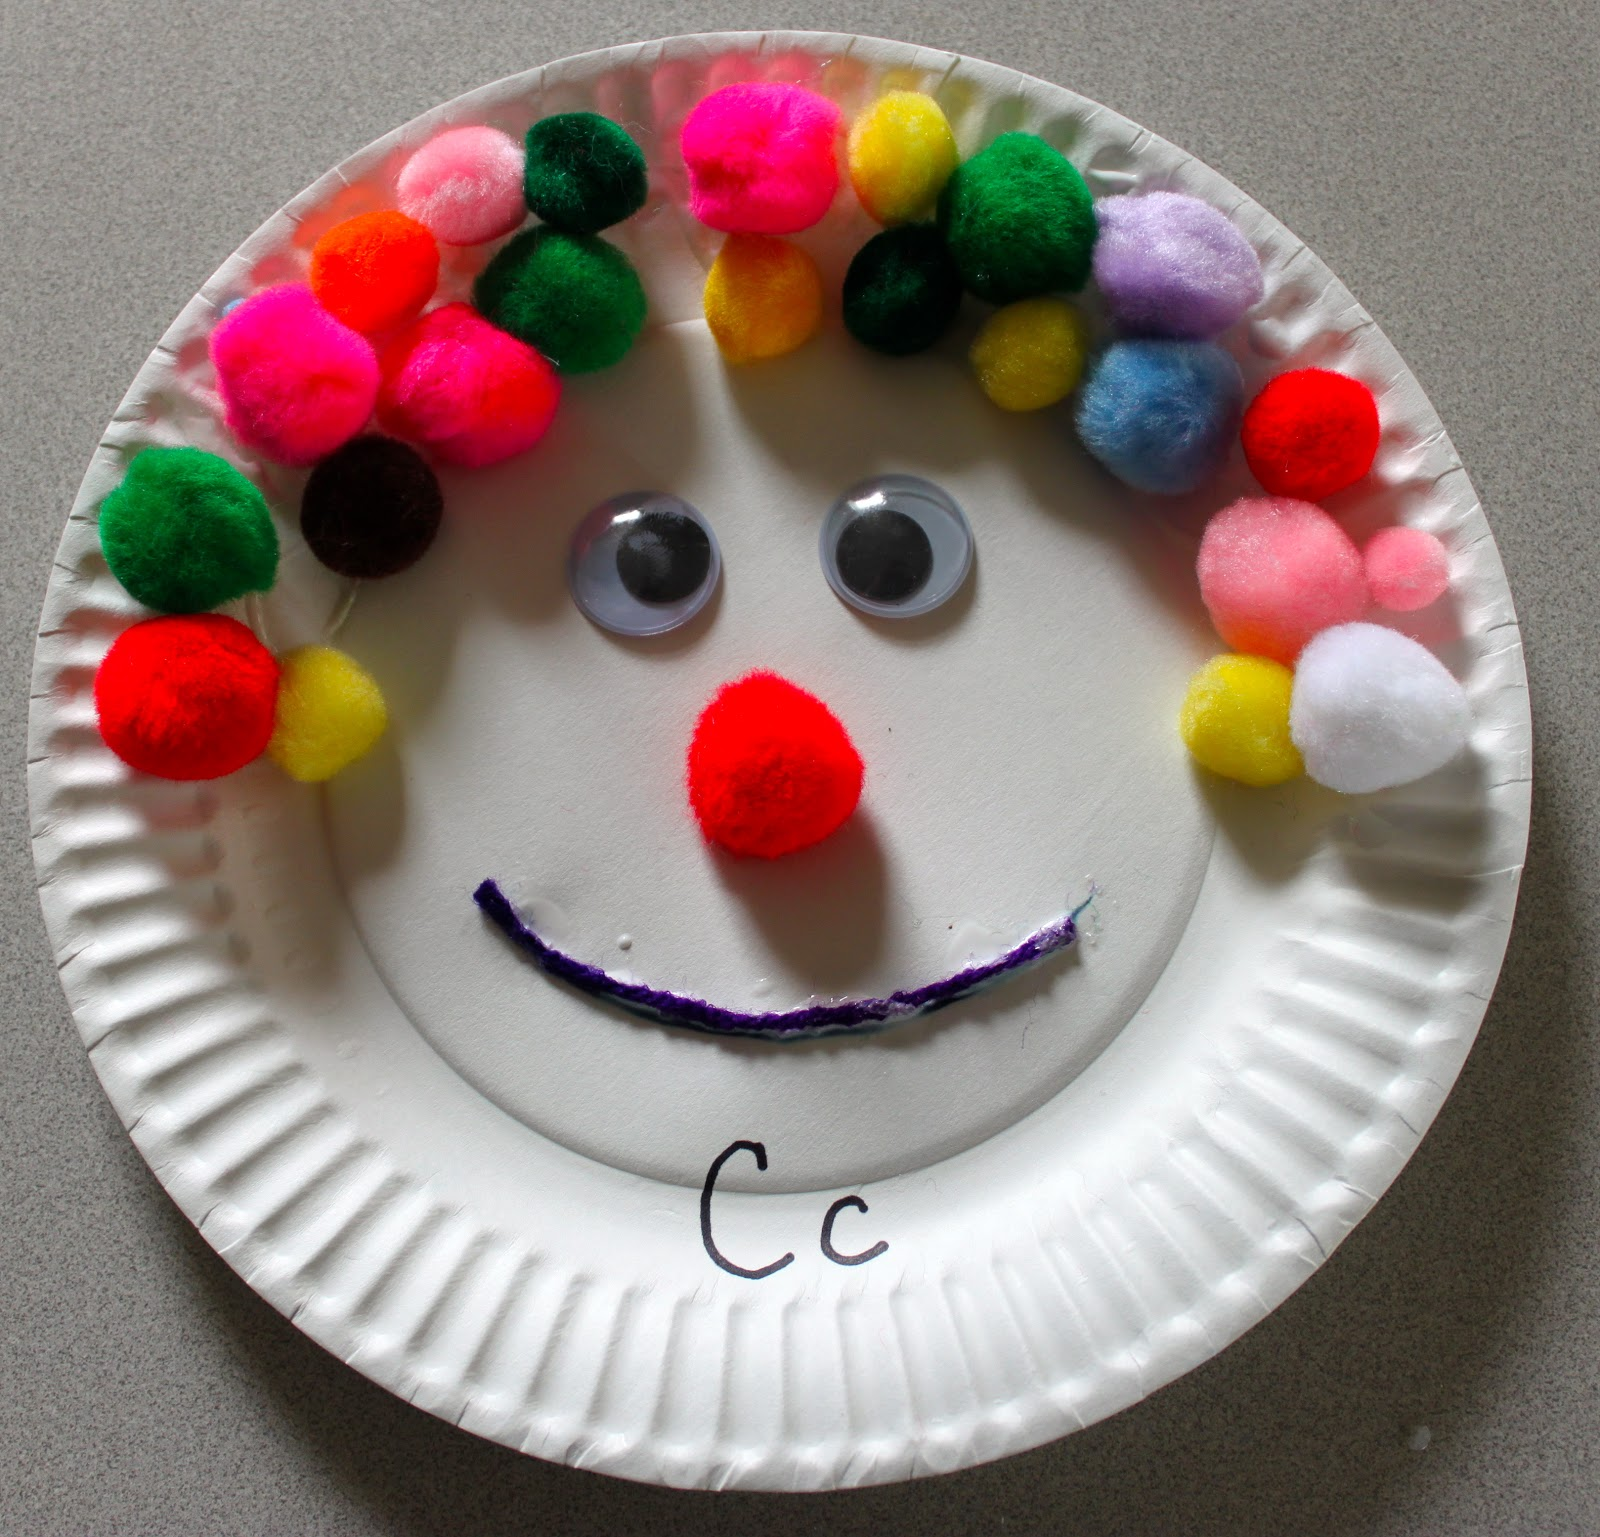 Paper Plate Craft & The Activity Mom - Paper Plate Craft - C is for Clown - The Activity Mom